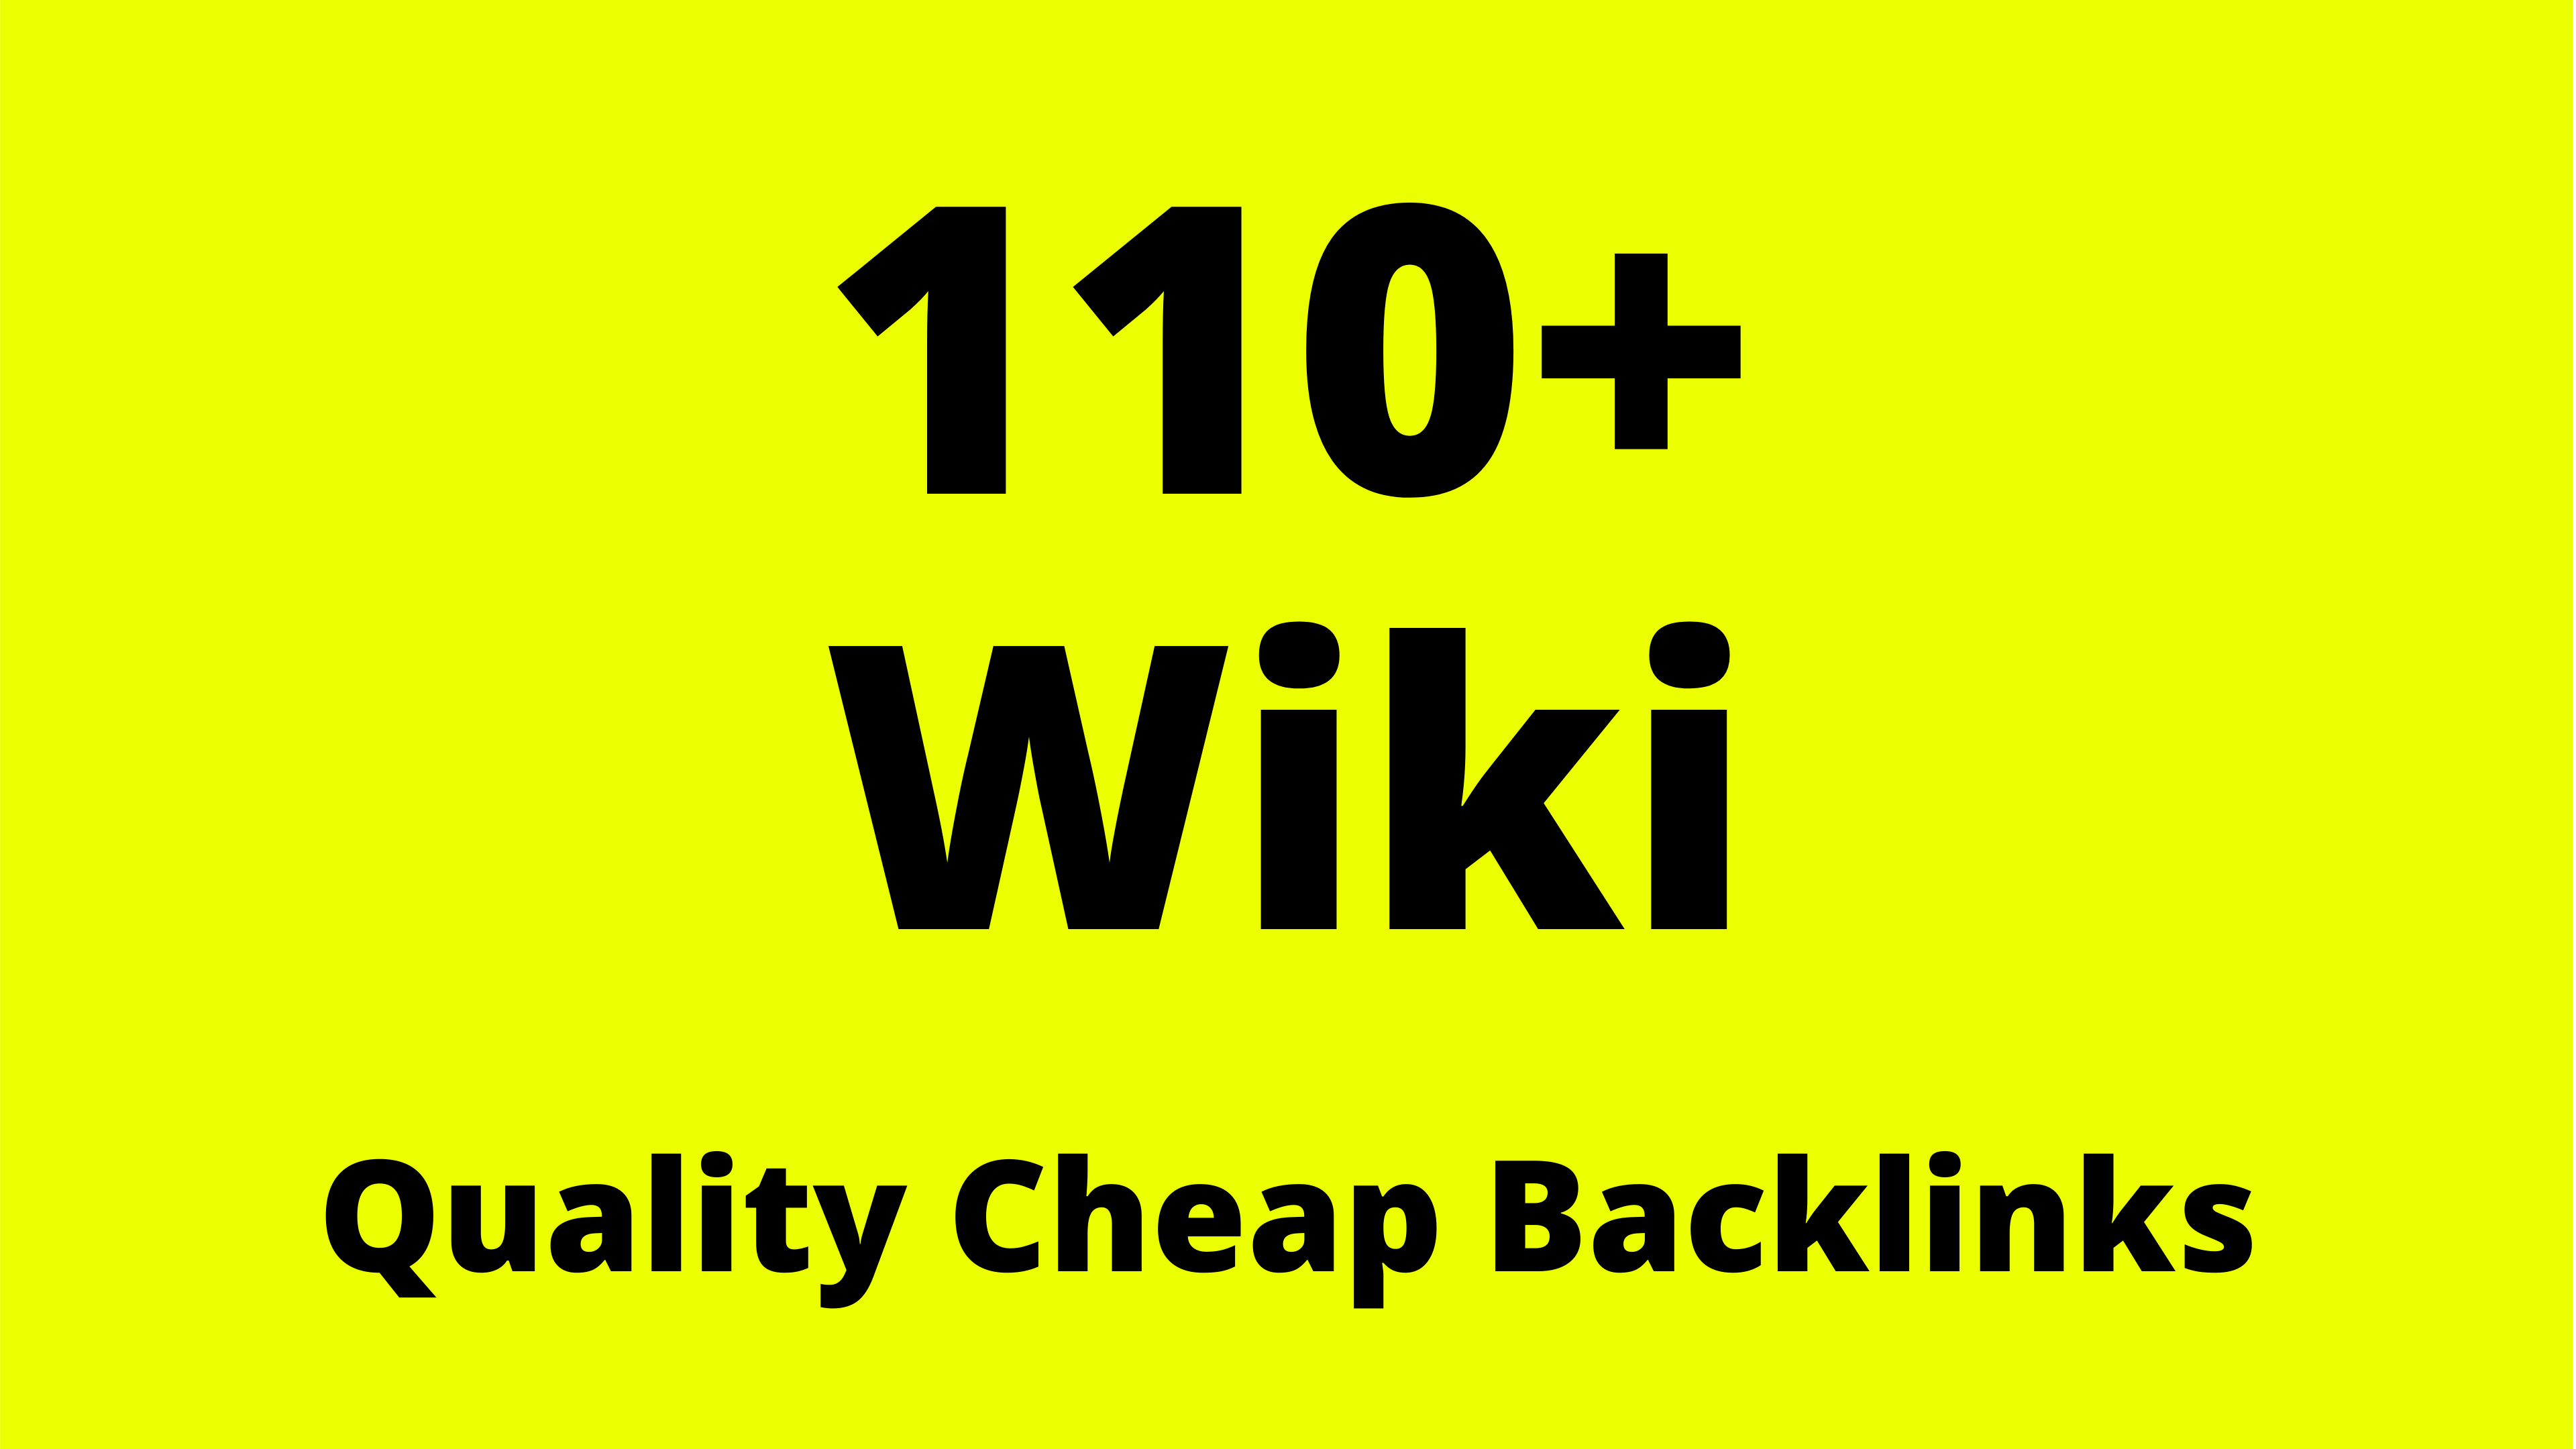 Wiki Sites 110 Backlinks Cheap SEO Backlinks Limited Time Offer